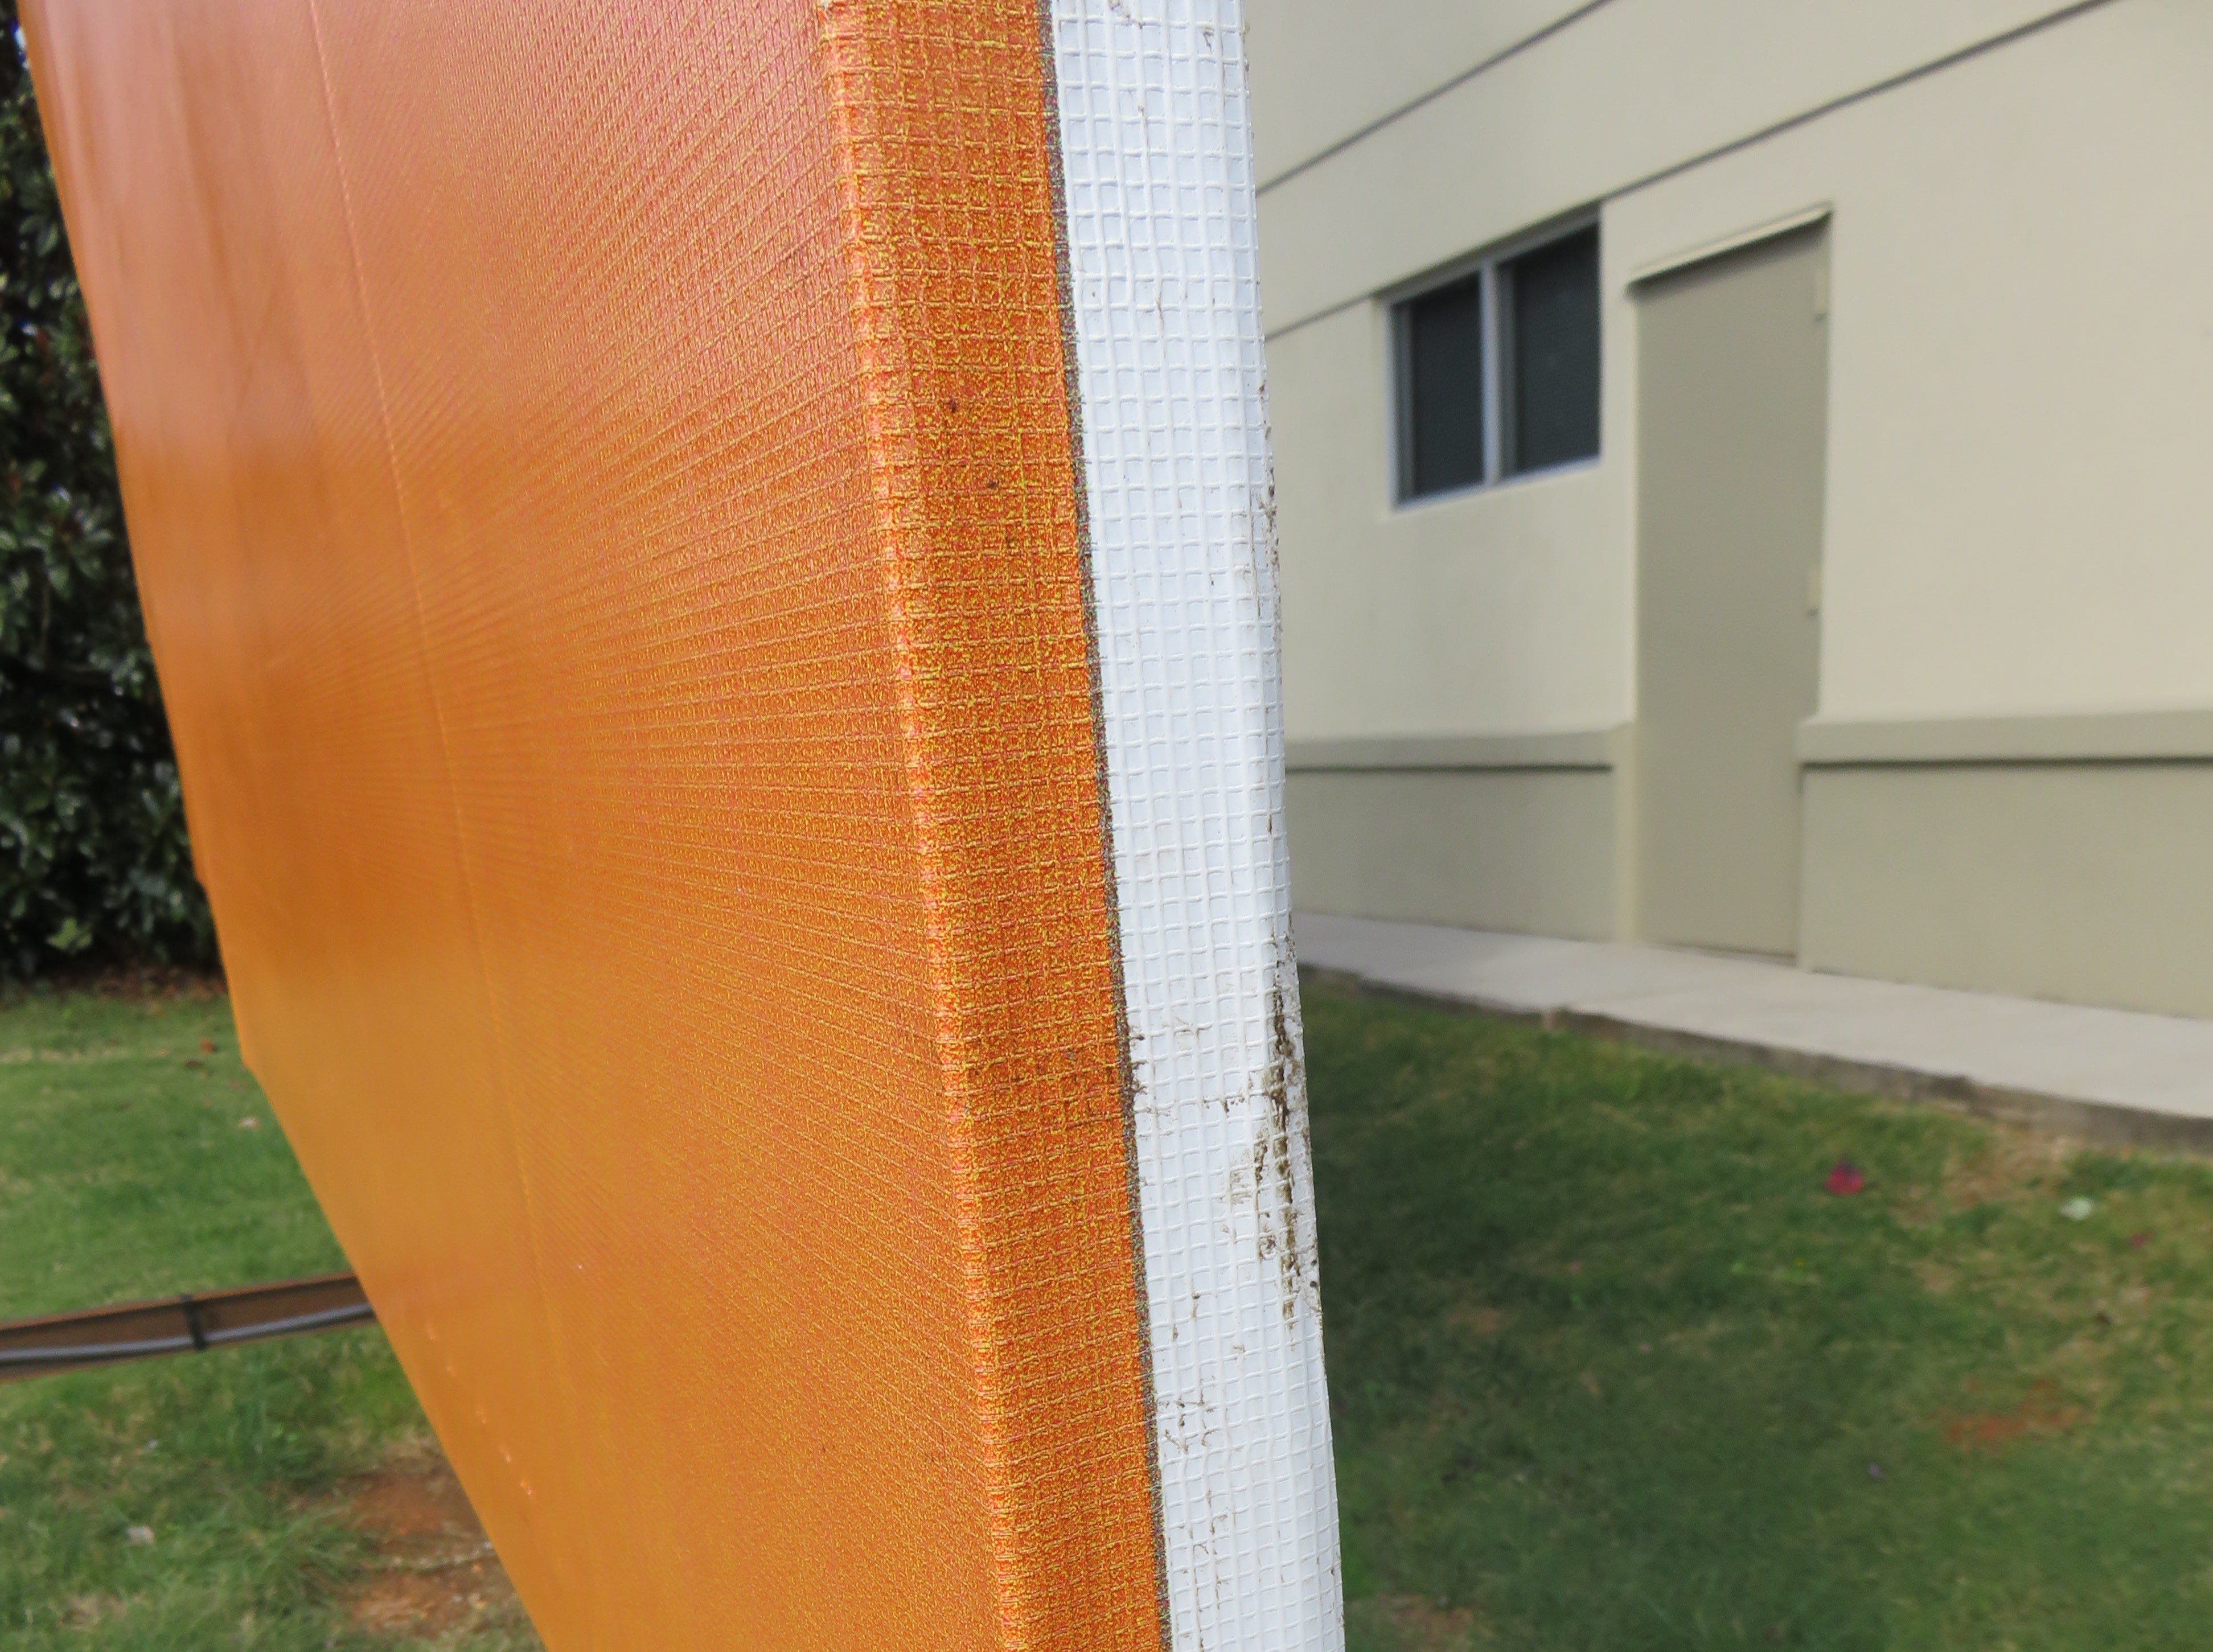 Metallic base of billboard sign has durable material over it to create orange color.